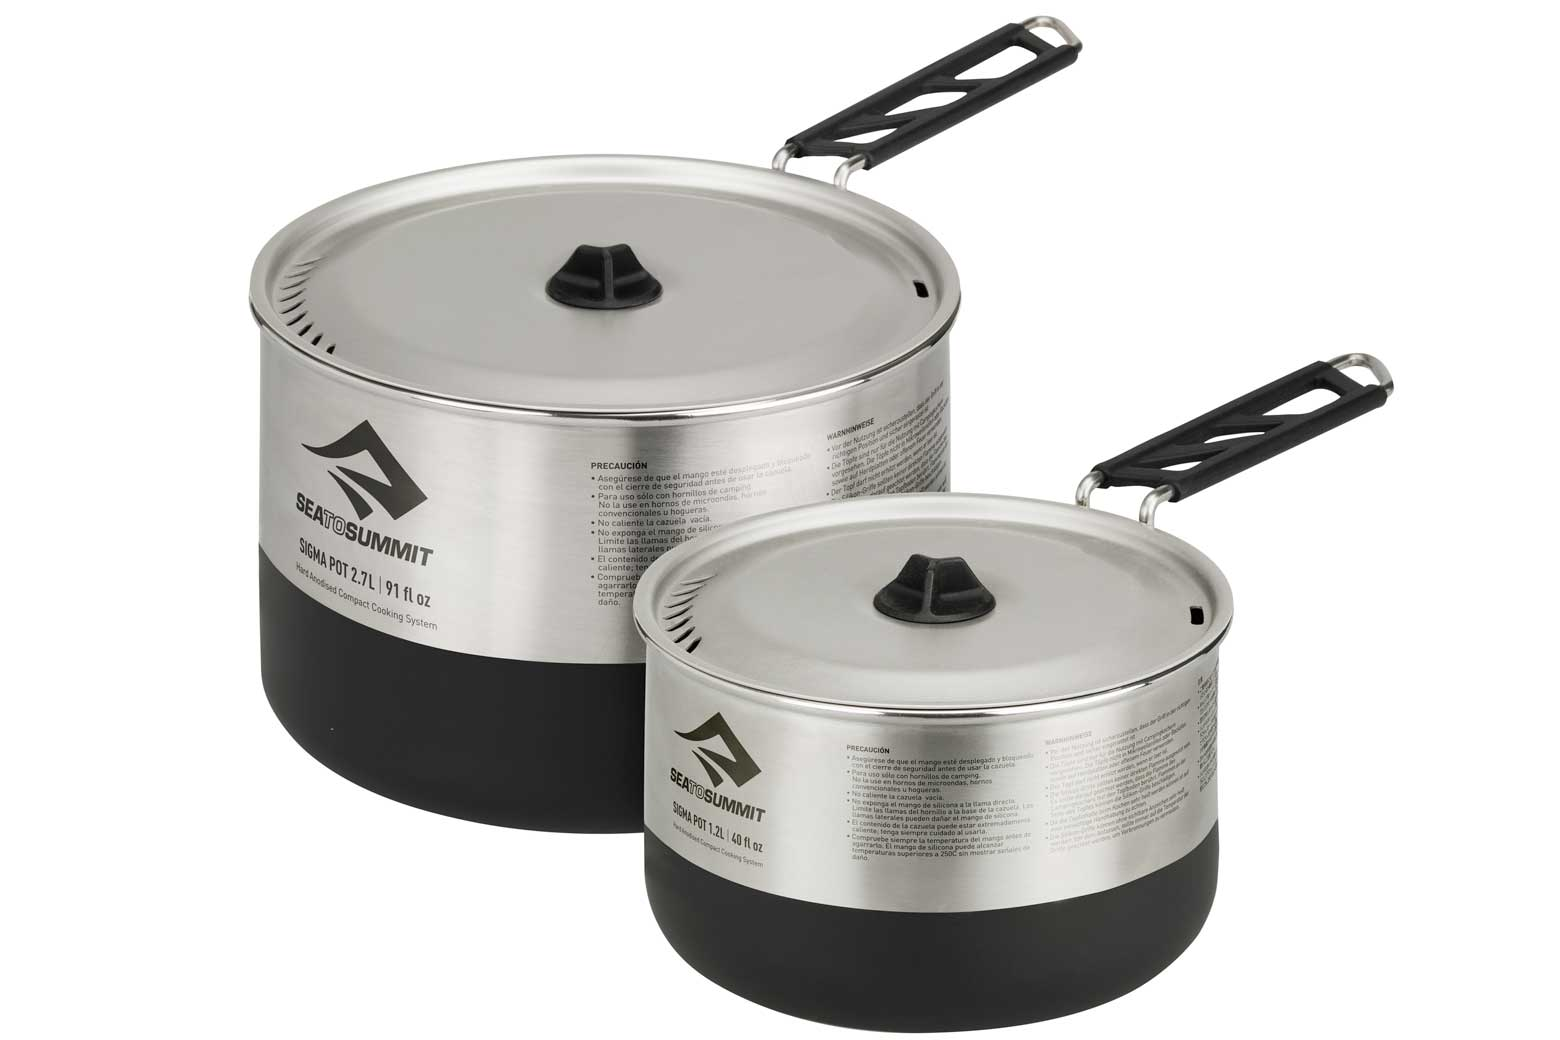 The Sea to Summit Sigma Cookset consists of two Sigma Pots; a 1.2 liters and a 2.7 liters.